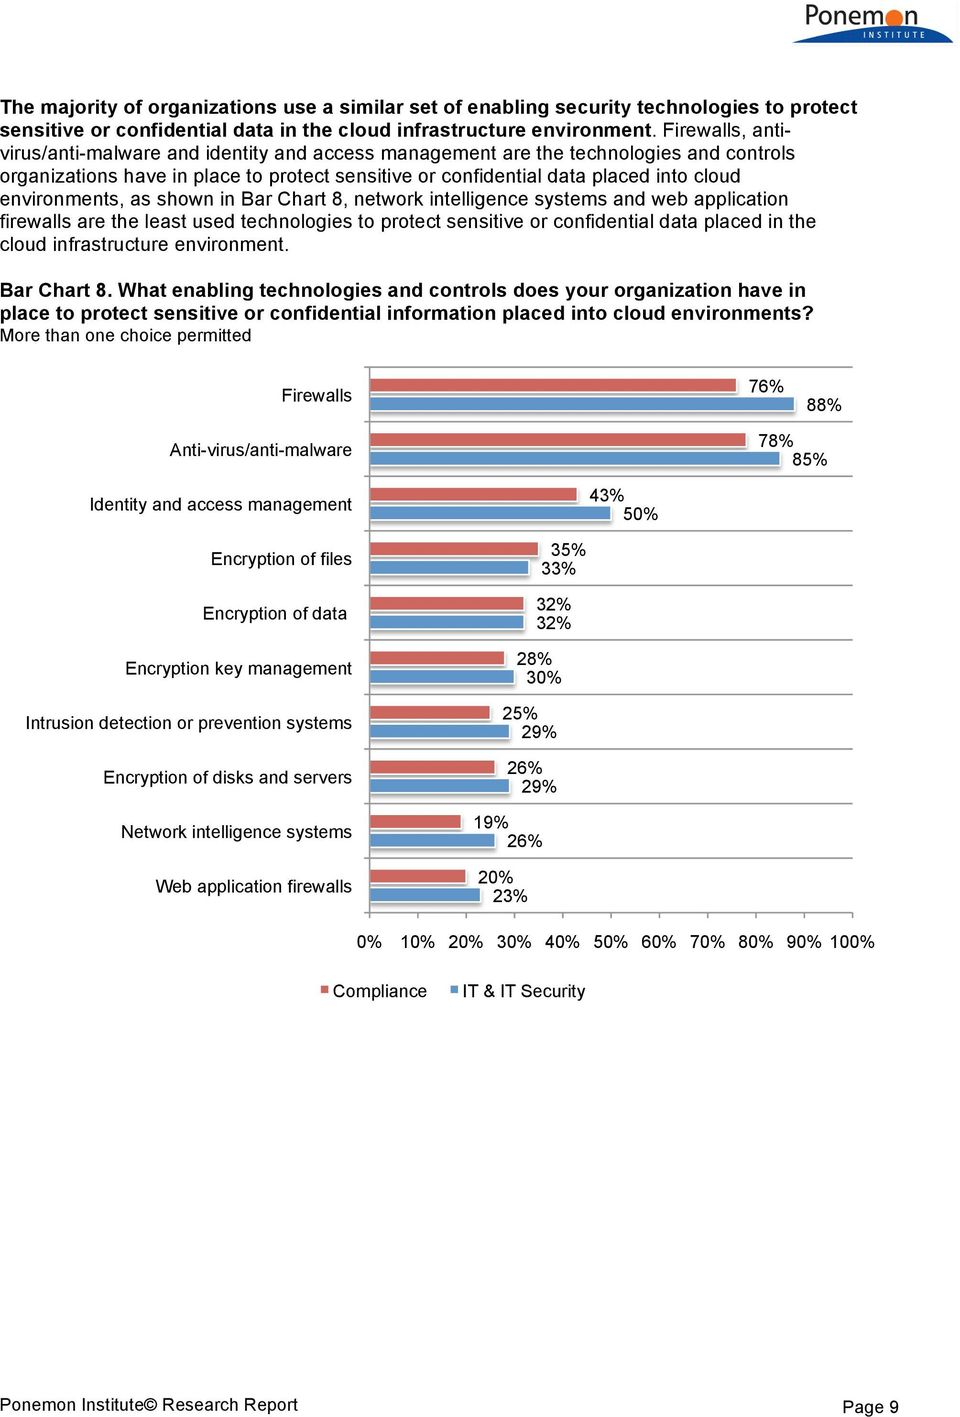 environments, as shown in Bar Chart 8, network intelligence systems and web application firewalls are the least used technologies to protect sensitive or confidential data placed in the cloud